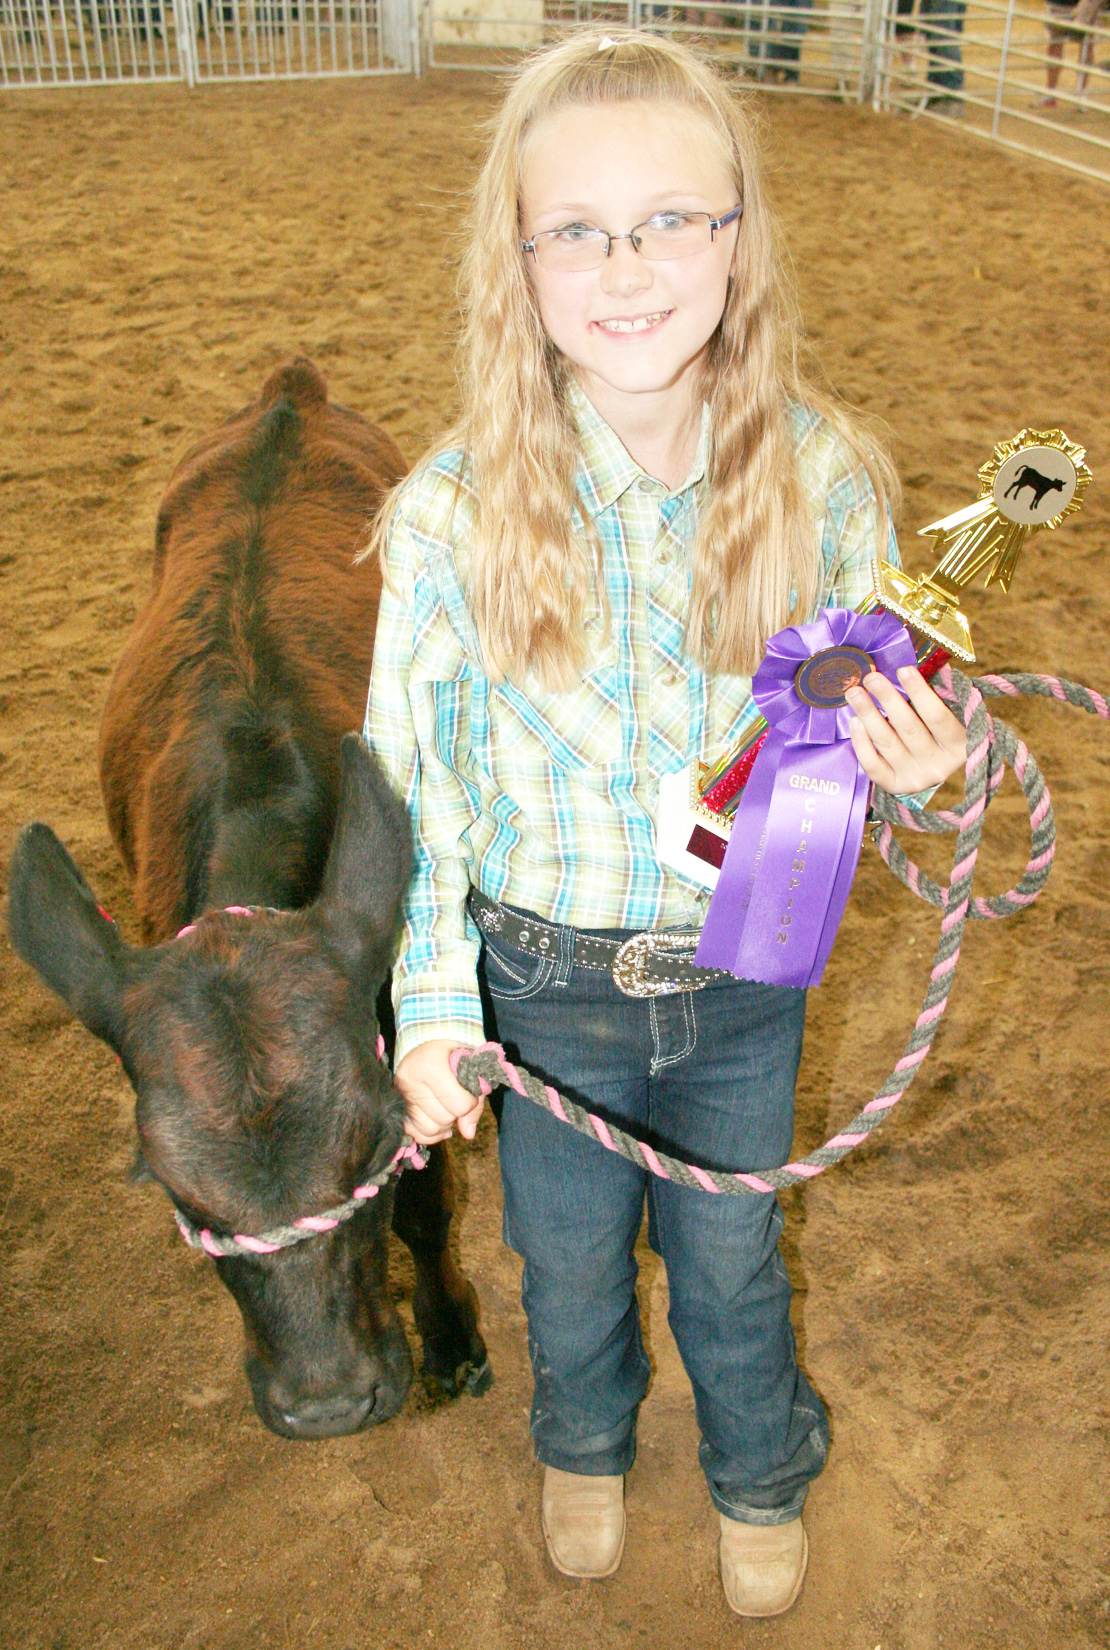 Breanna Brees of the Delia Early Birds won a trophy for best bucket calf interview at the beef show. (Photo by Brian Sanders)